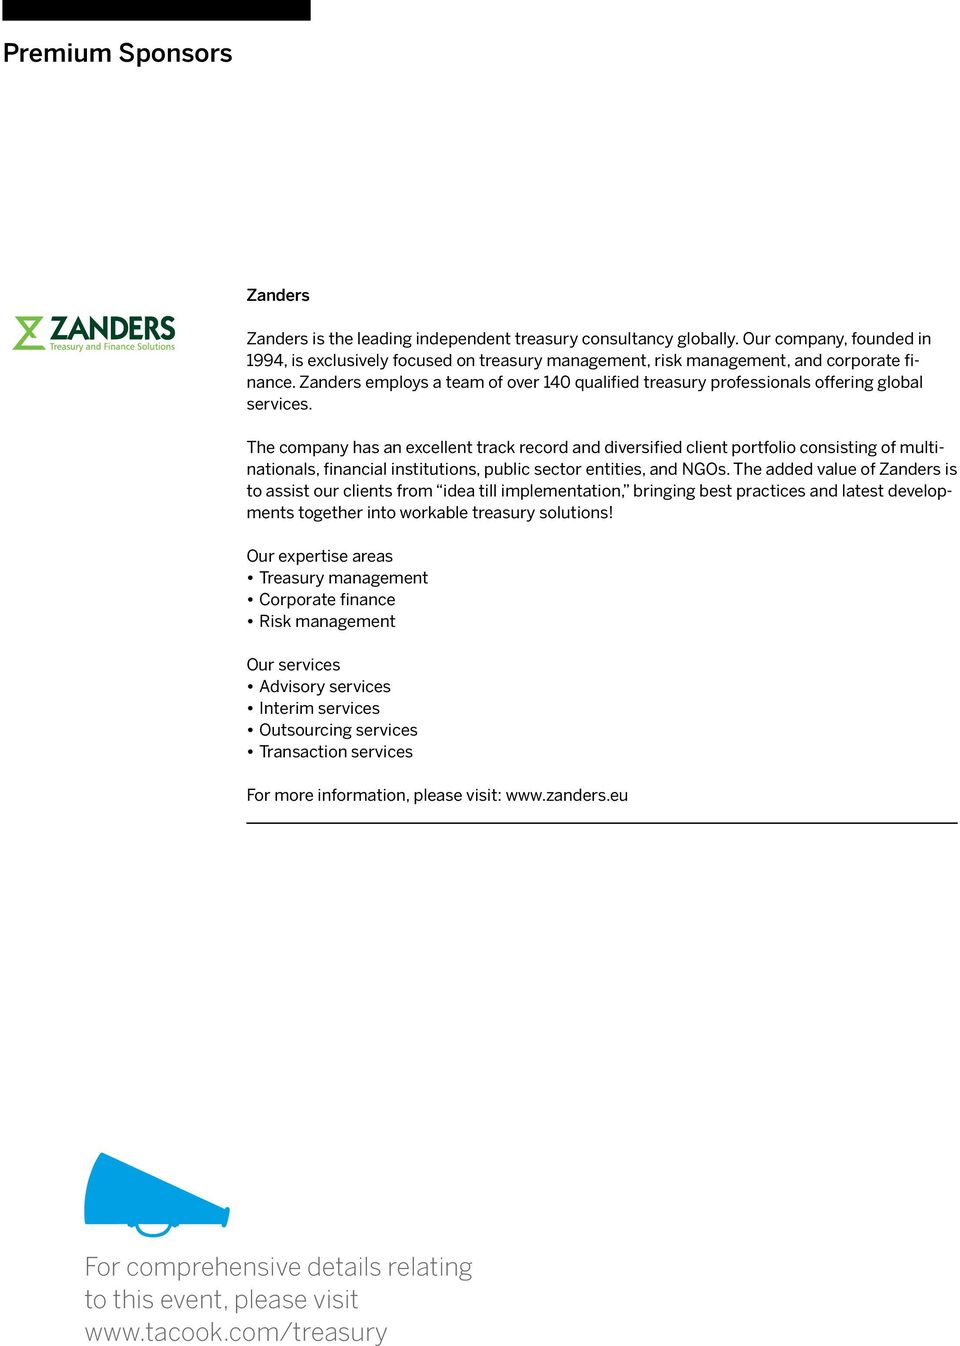 Zanders employs a team of over 140 qualified treasury professionals offering global services.